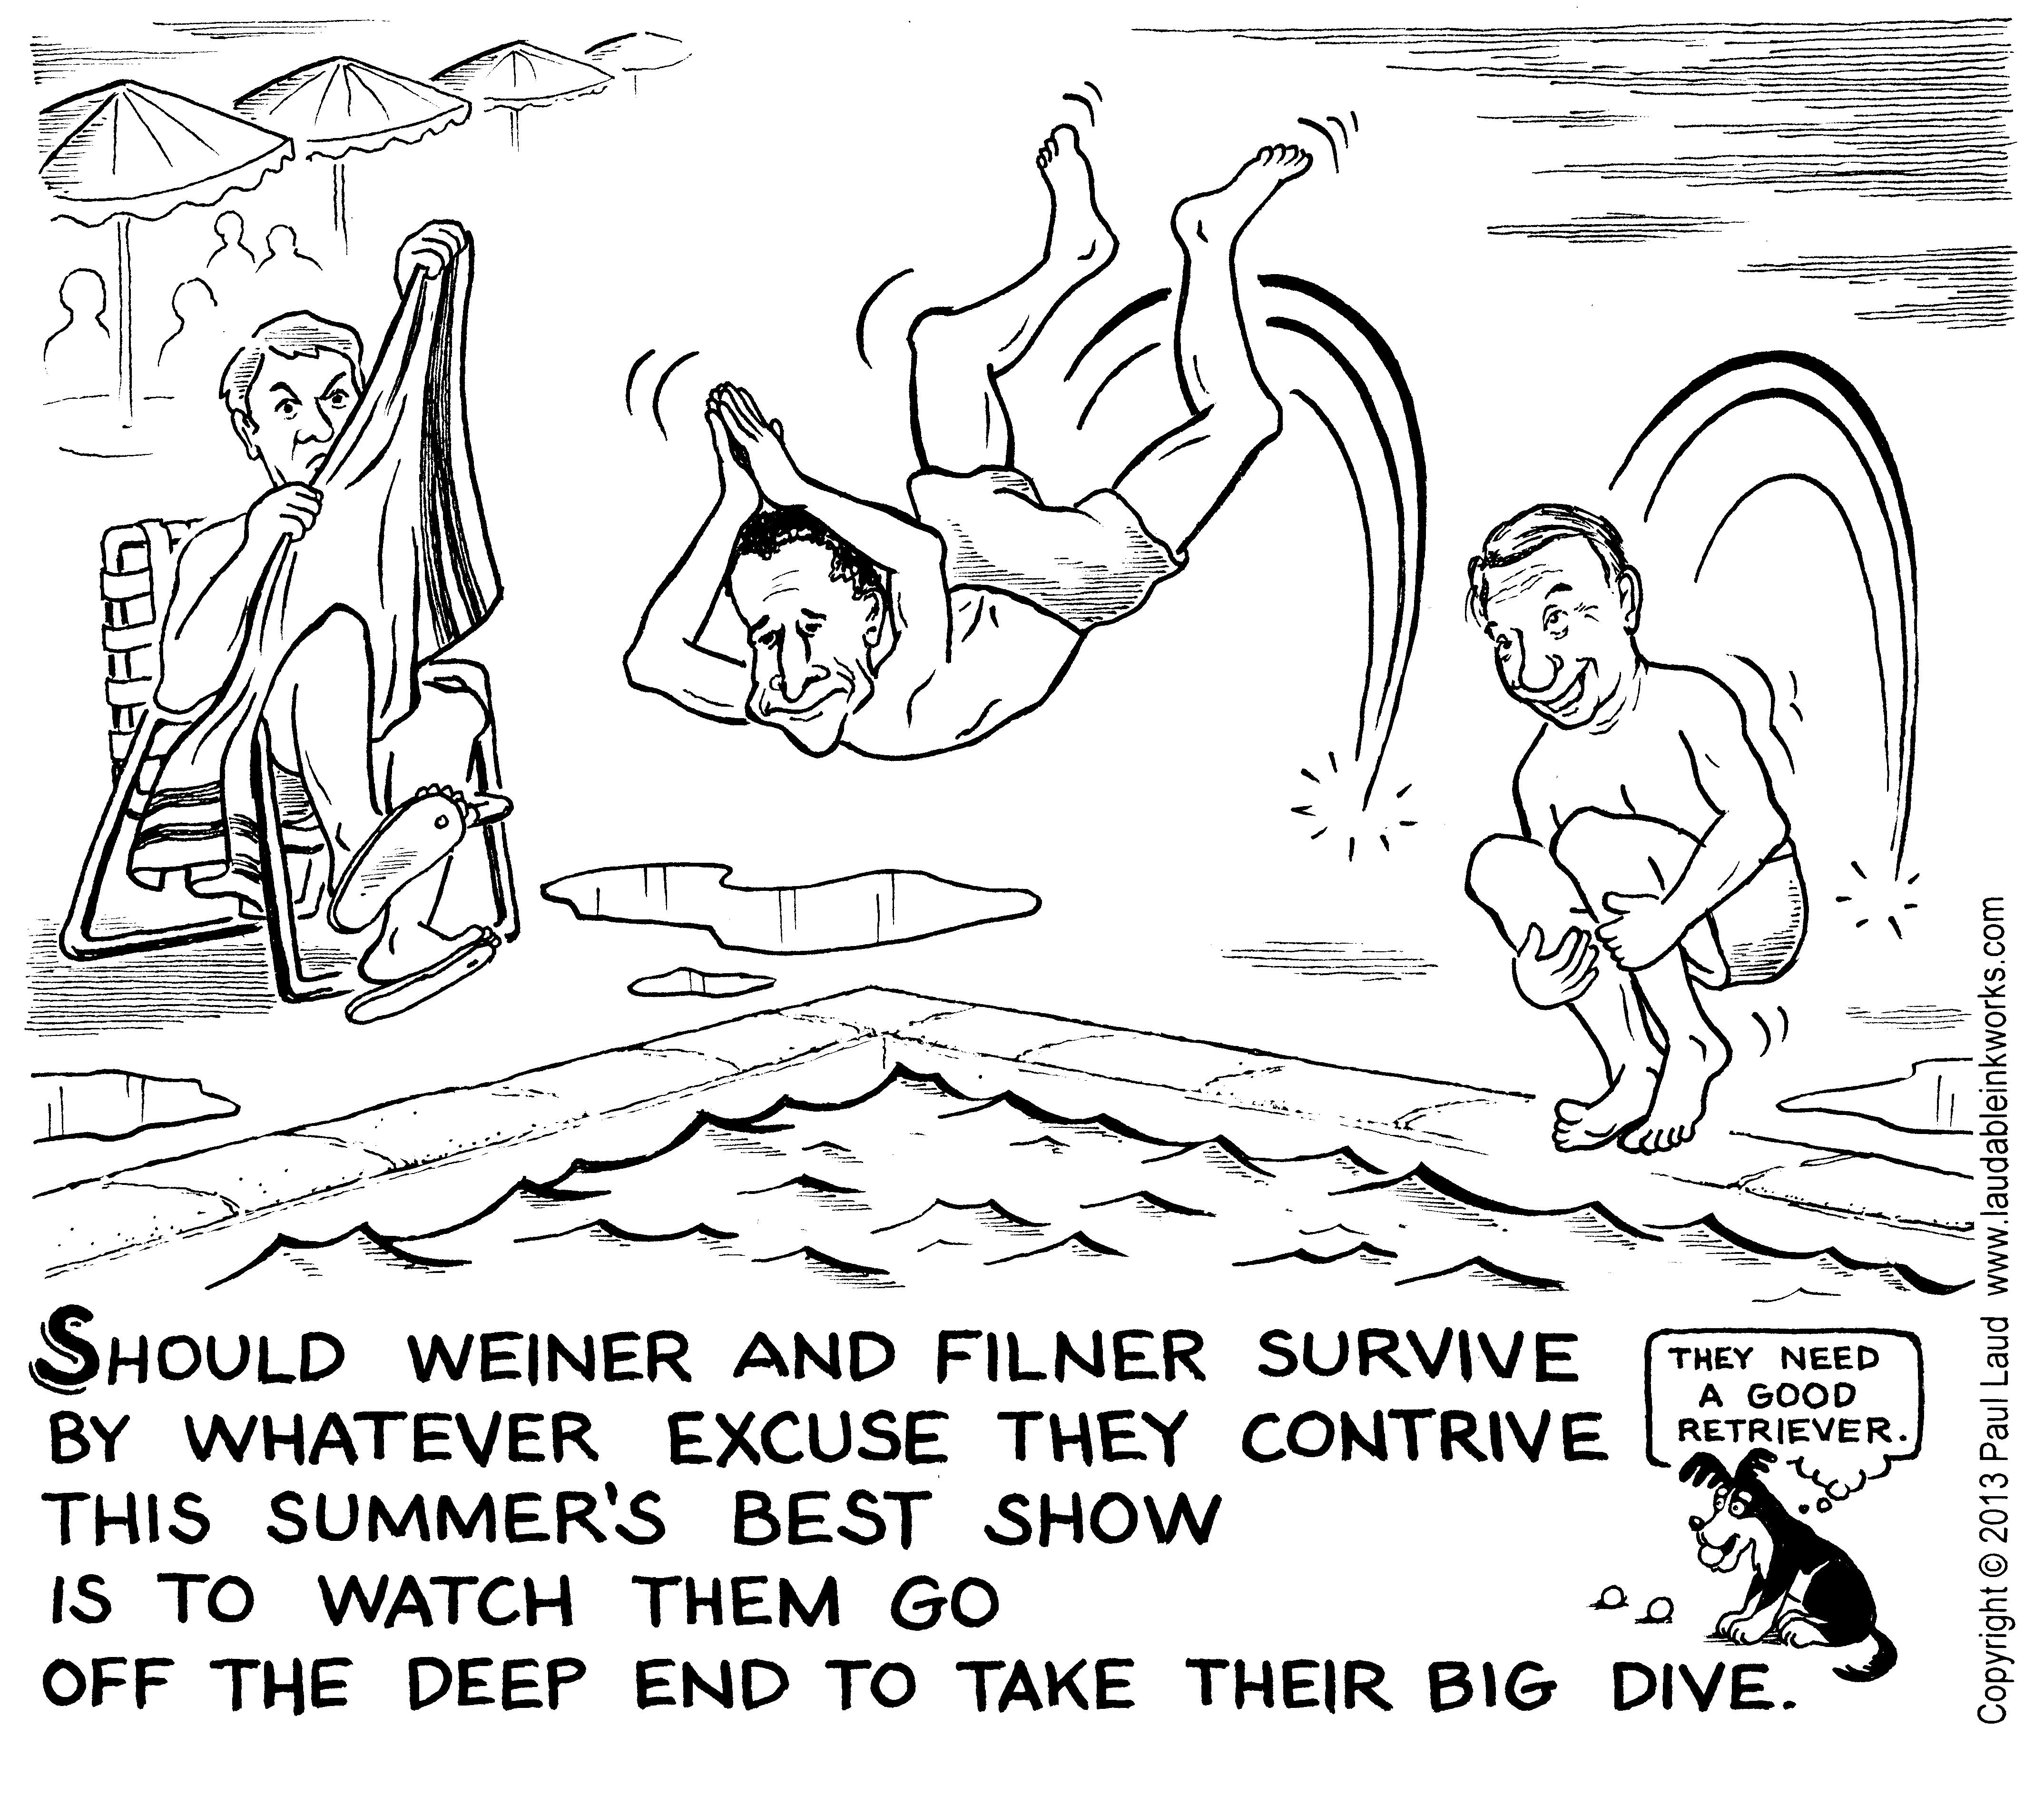 Off The Deep End With Weiner And Filner Nudged By